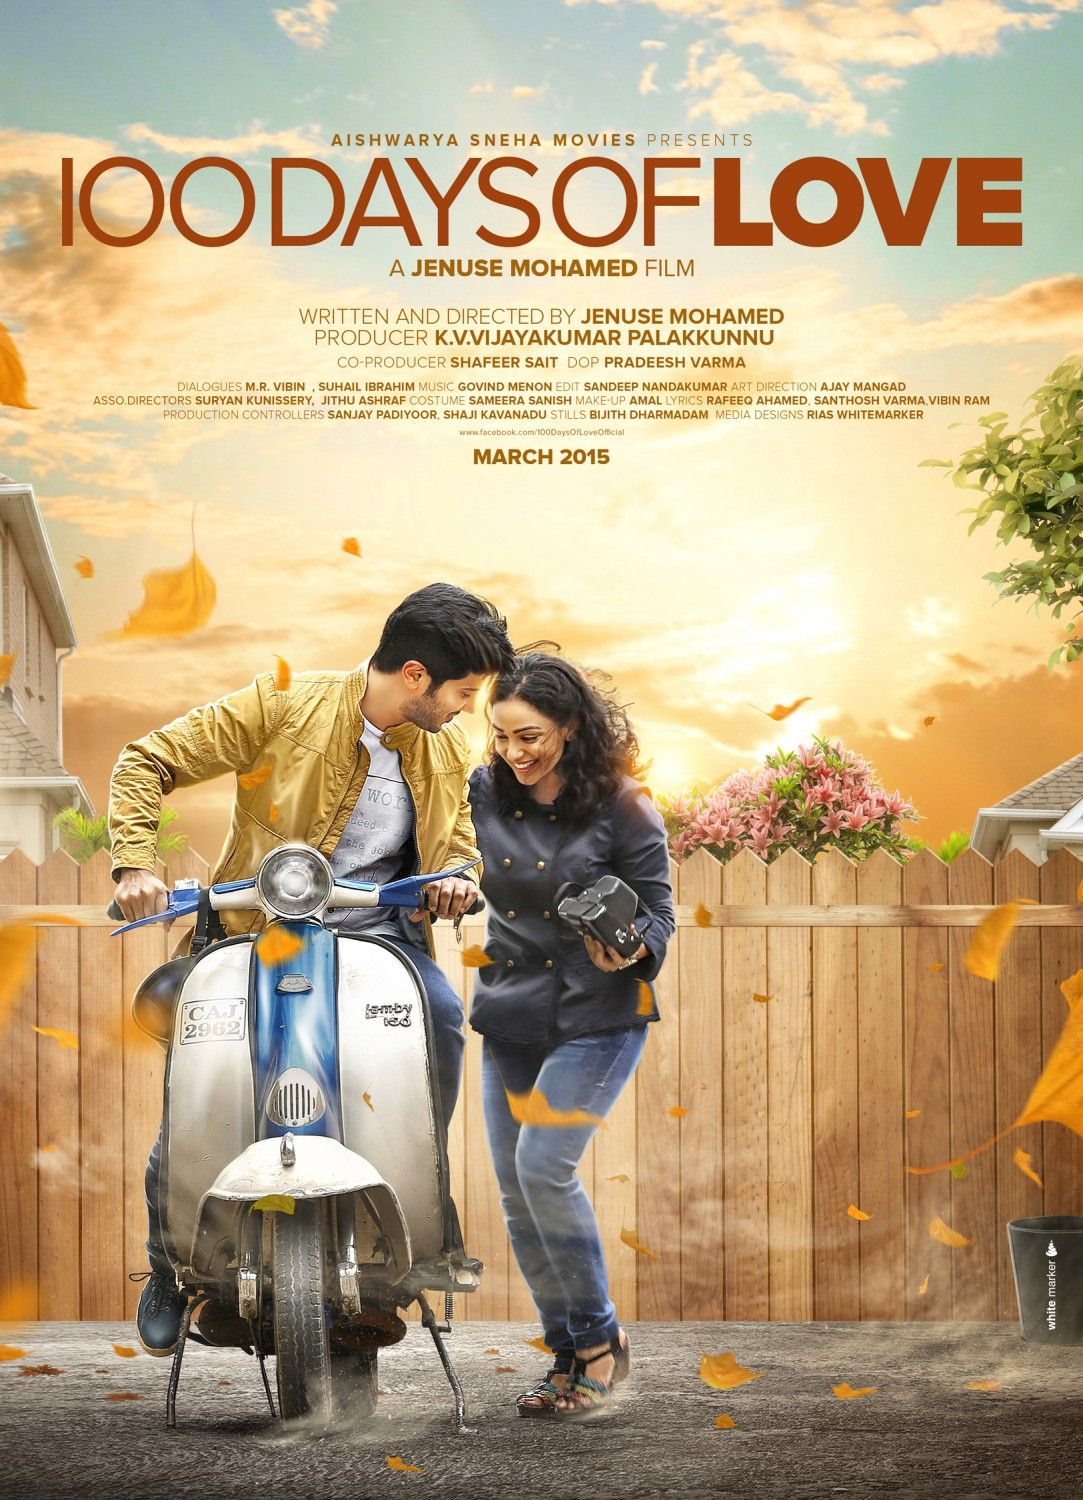 100 Days of Love is a 2015 Malayalam romantic comedy film